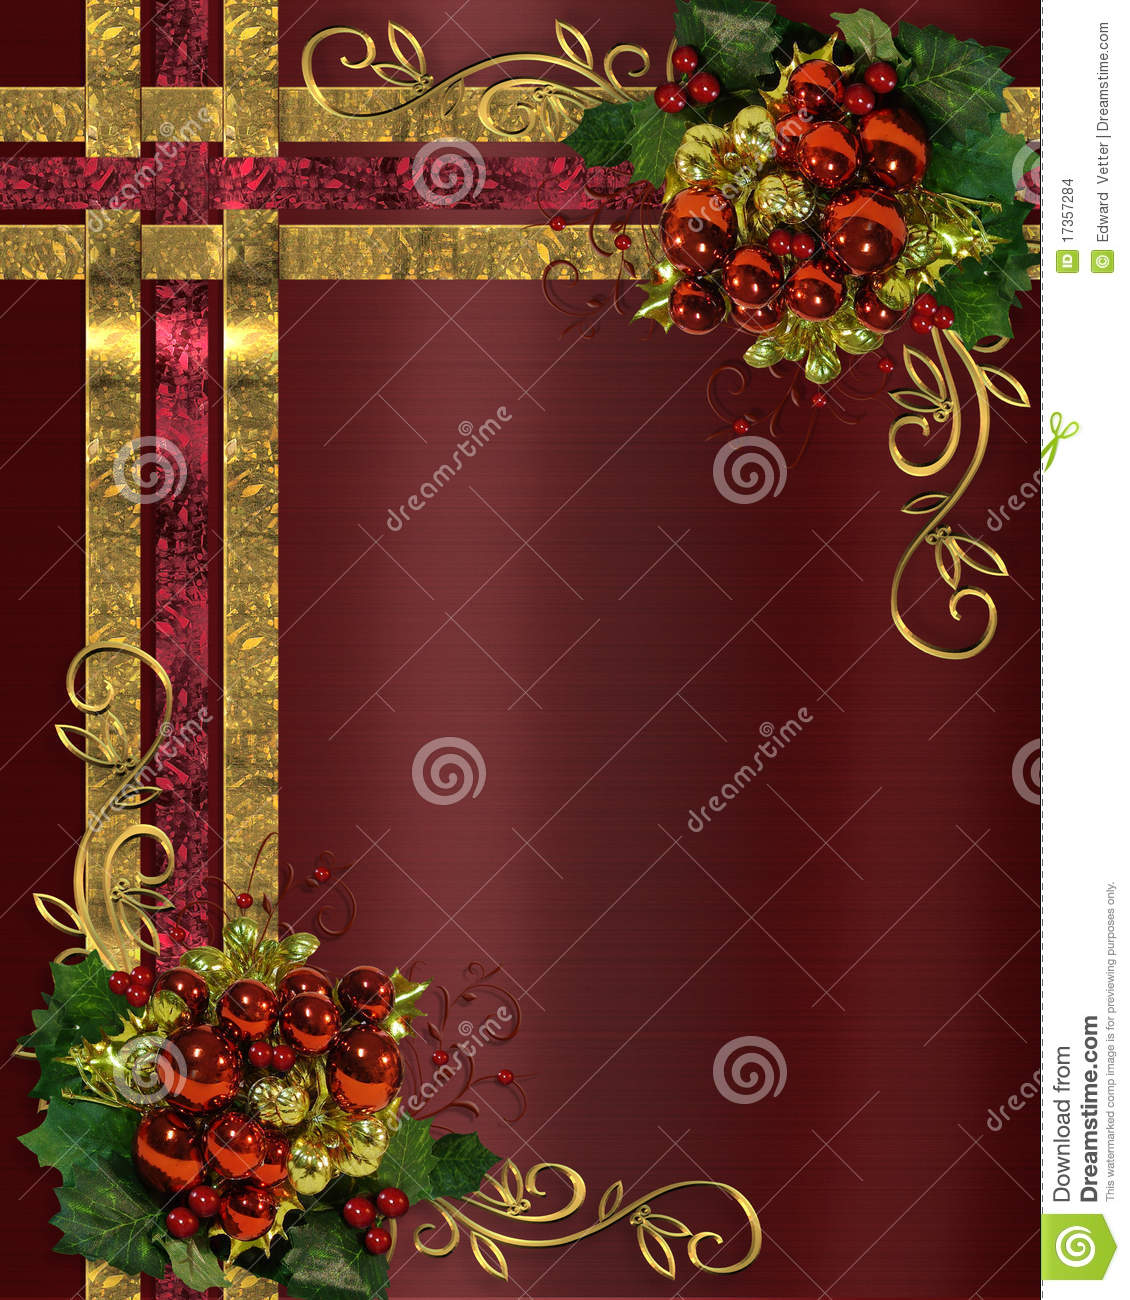 burgundy and gold holiday wallpaper - photo #10